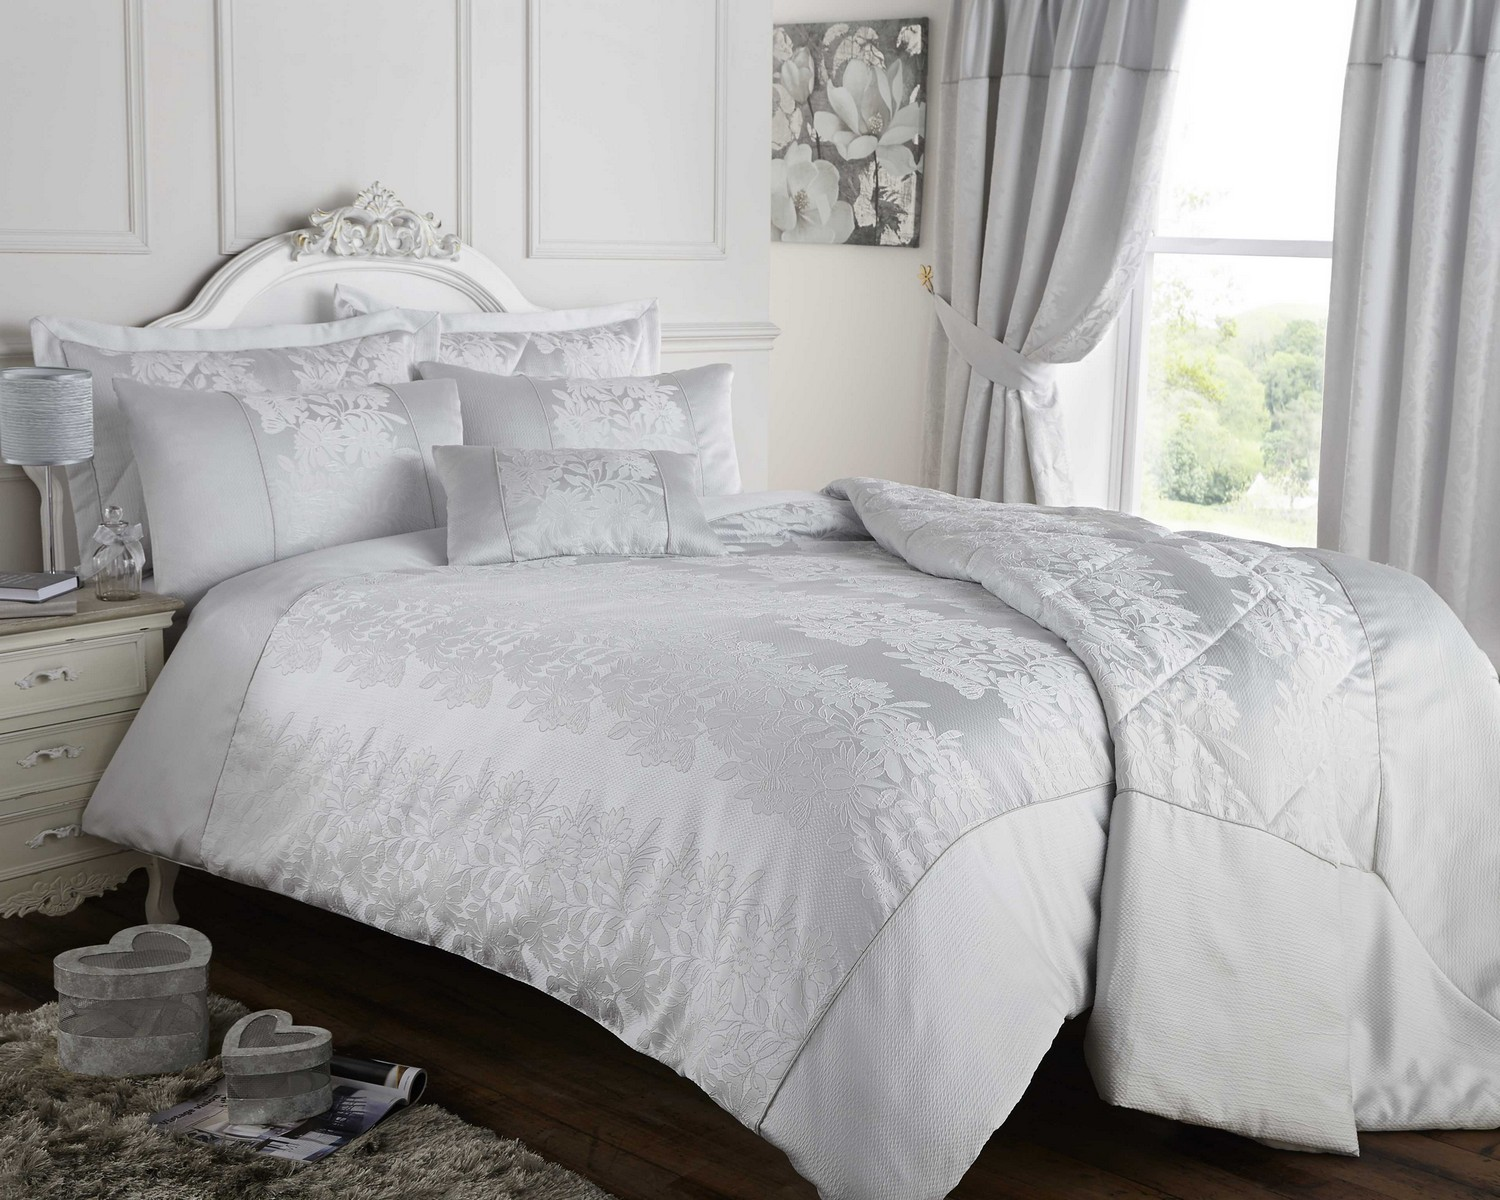 Bedding sets make it simple to purchase the bedding items you need all in one convenient package. The options we have available include bed-in-a-bag sets, comforter sets, quilt and bedspread sets, duvet sets and kids' bedding sets.